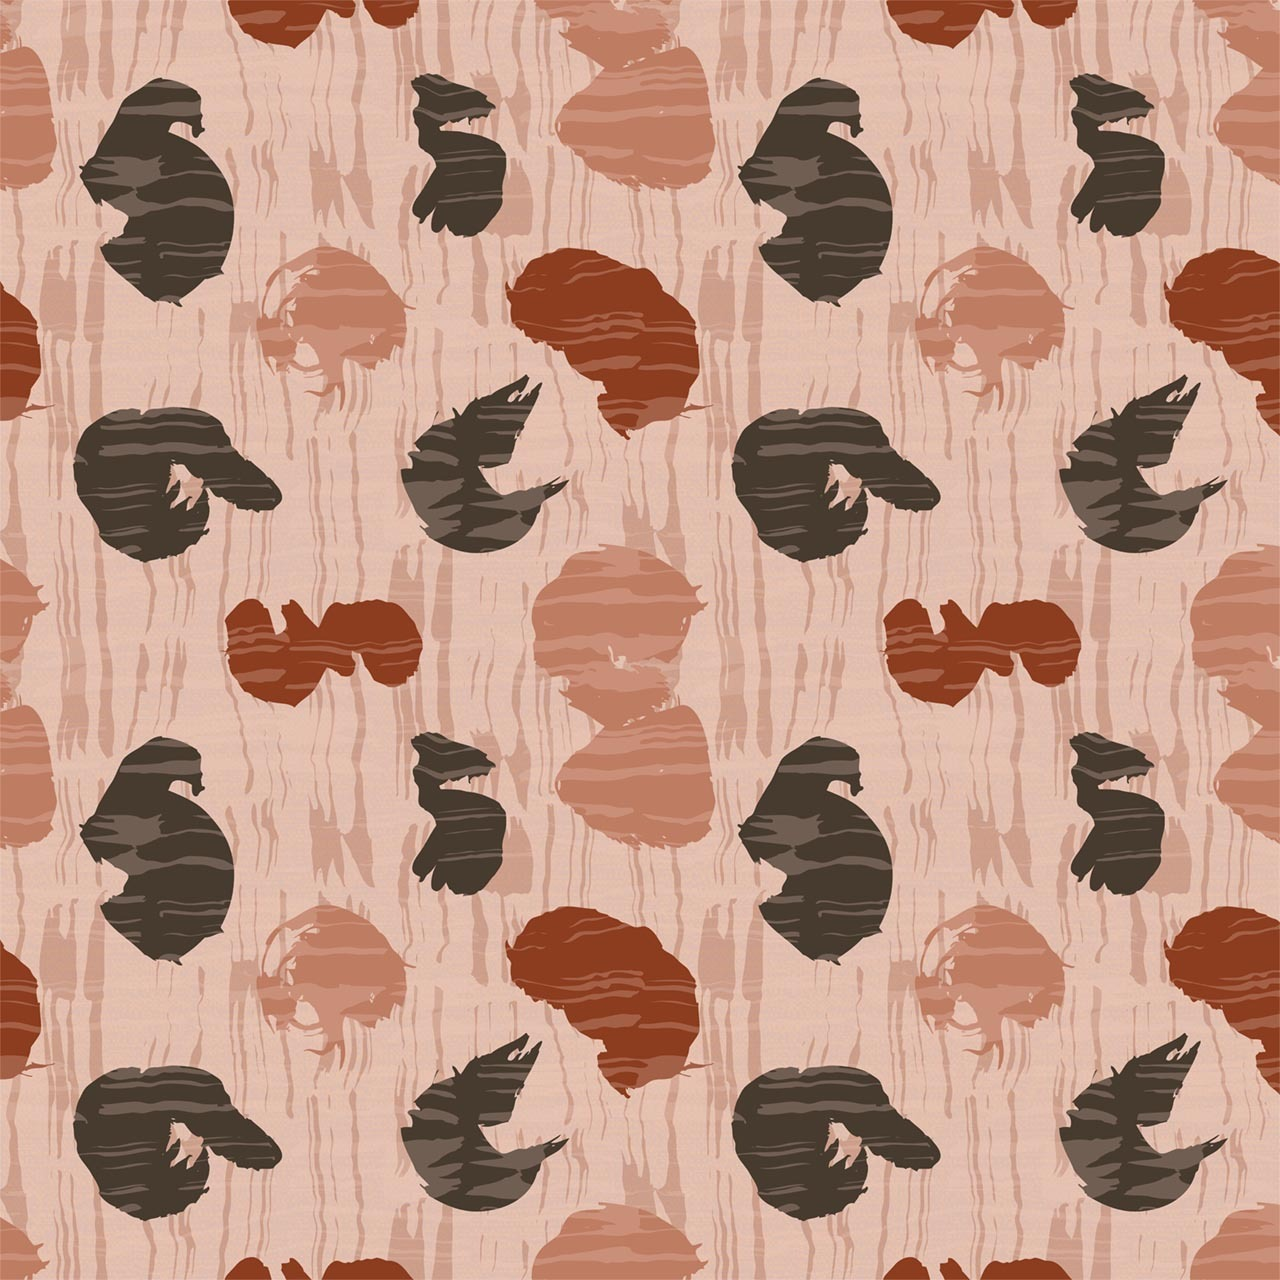 Calligraphy Water Fabric Design (Blush colorway)